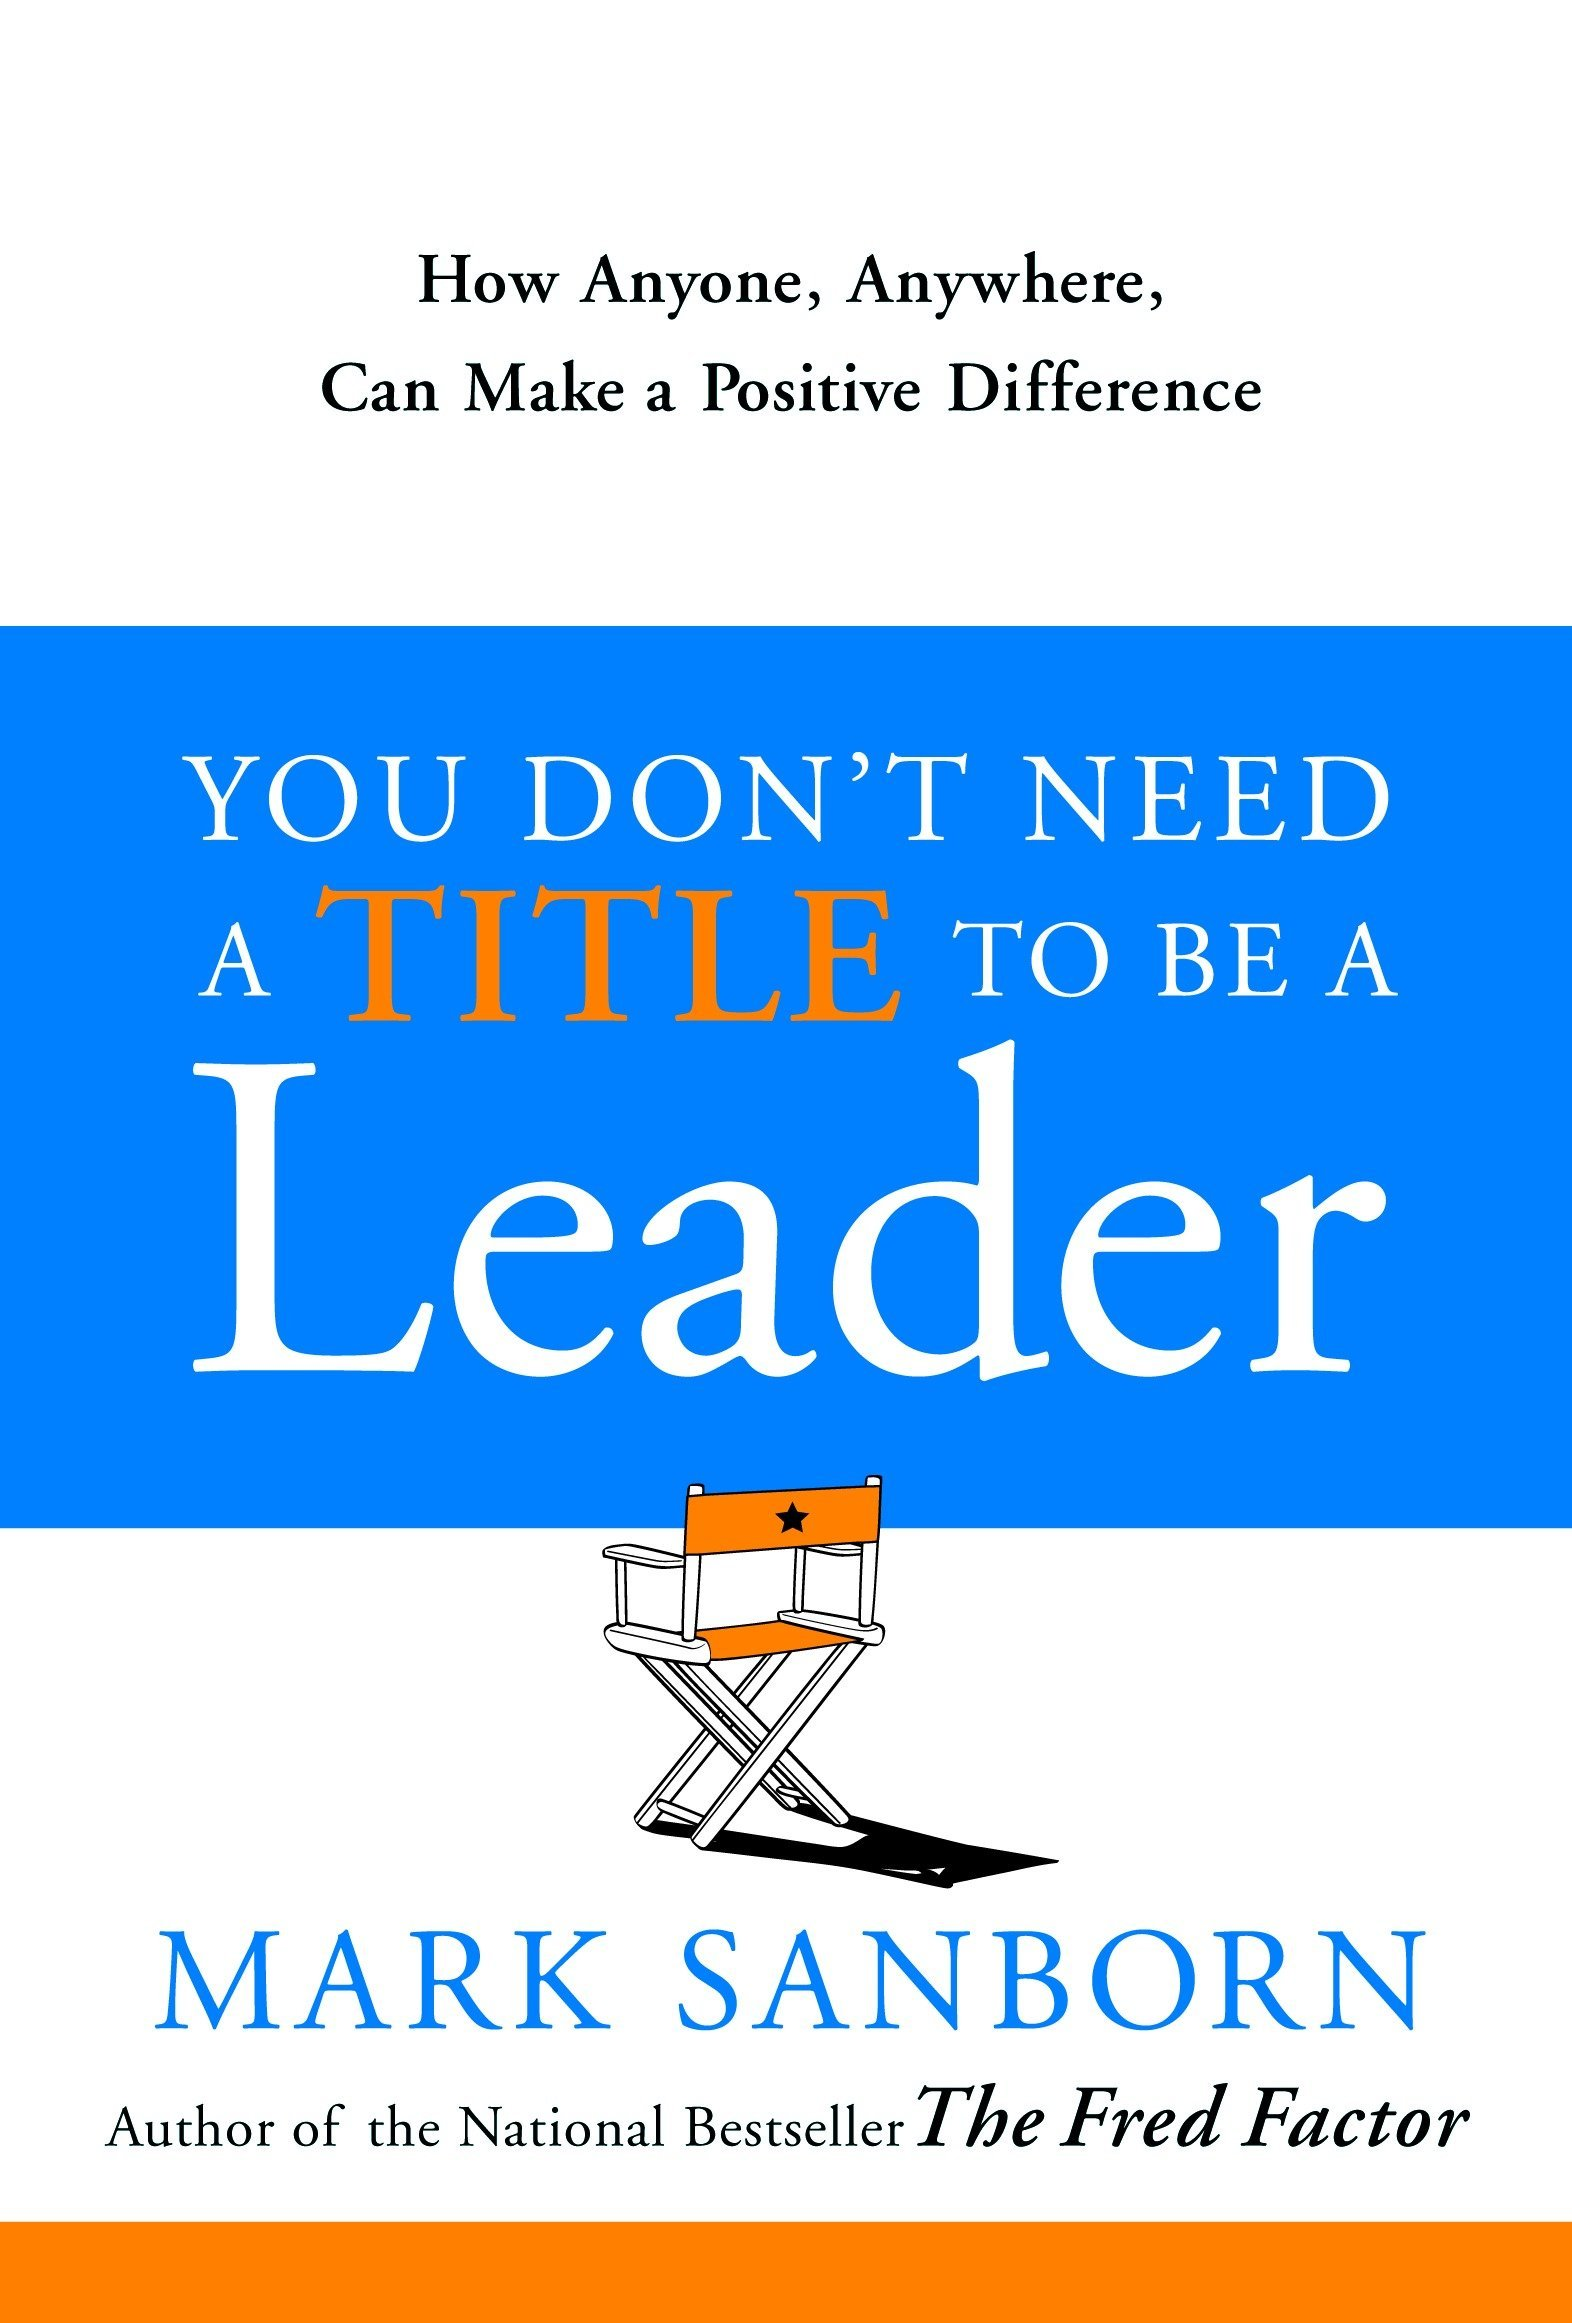 You Don't Need a Title to Be a Leader: How Anyone, Anywhere, Can Make a Positive  Difference: Mark Sanborn: 9780385517478: Amazon.com: Books